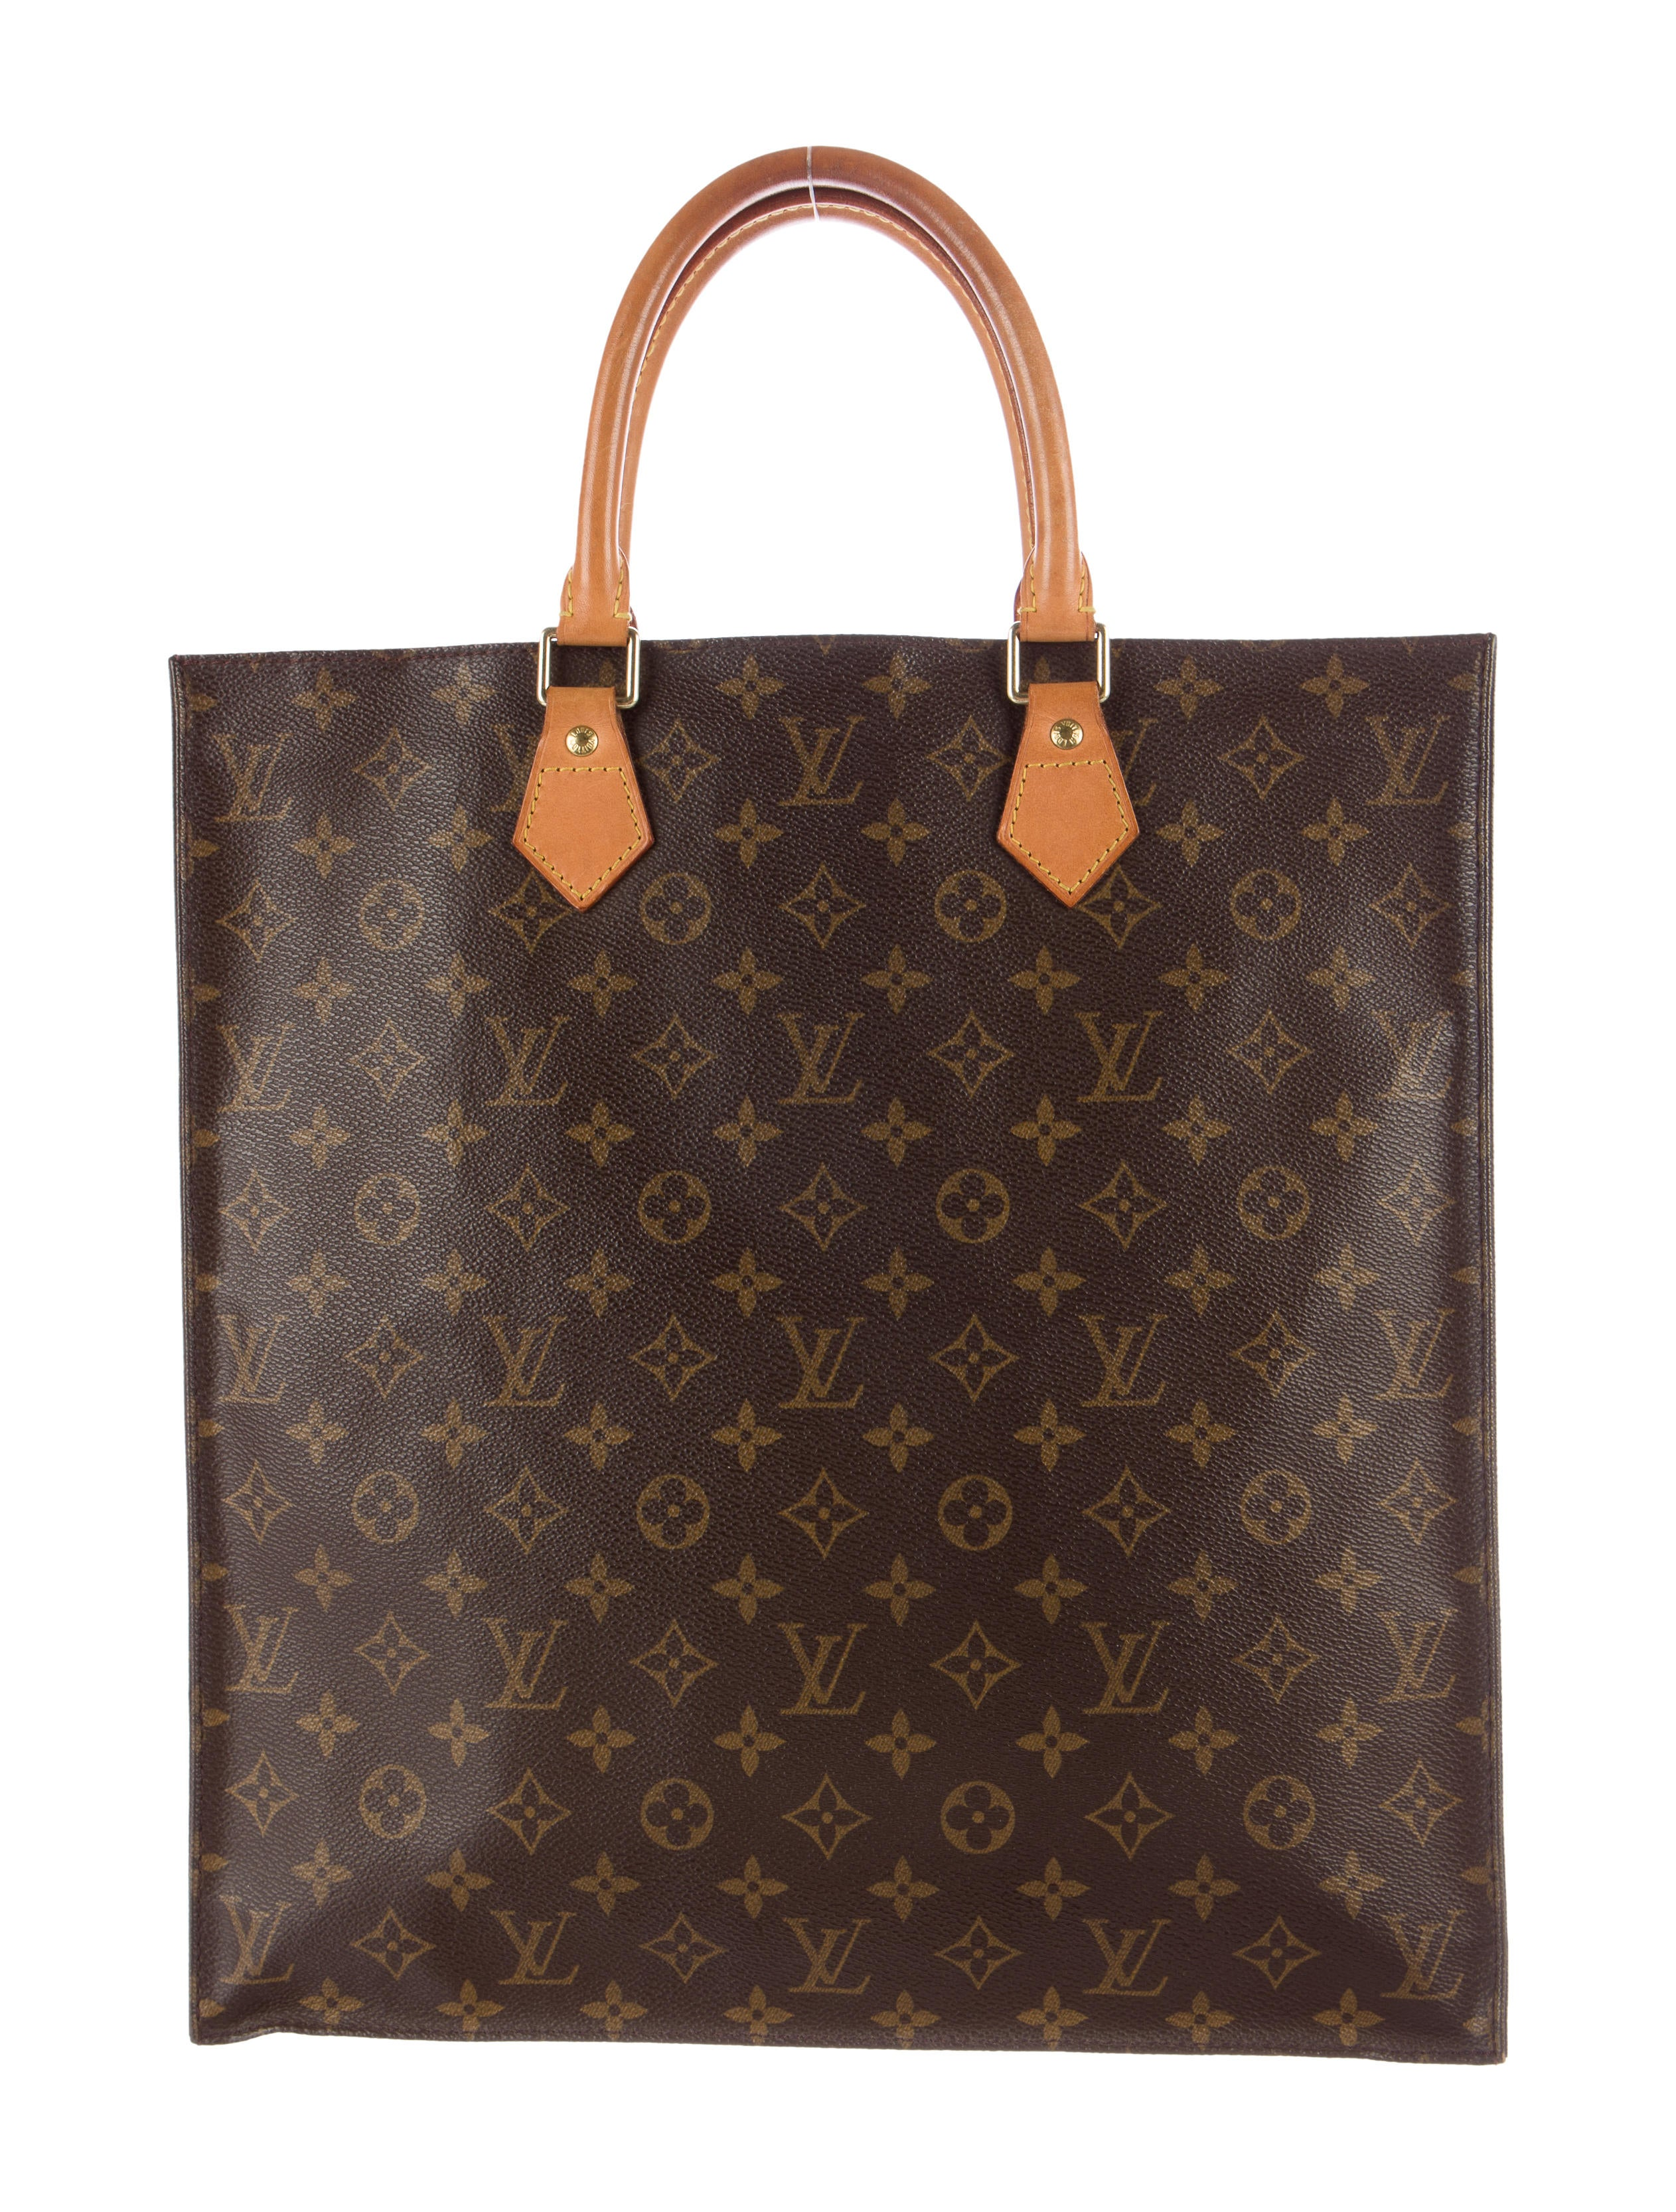 Louis vuitton monogram sac plat handbags lou109101 for Louis vuitton monogram miroir sac plat